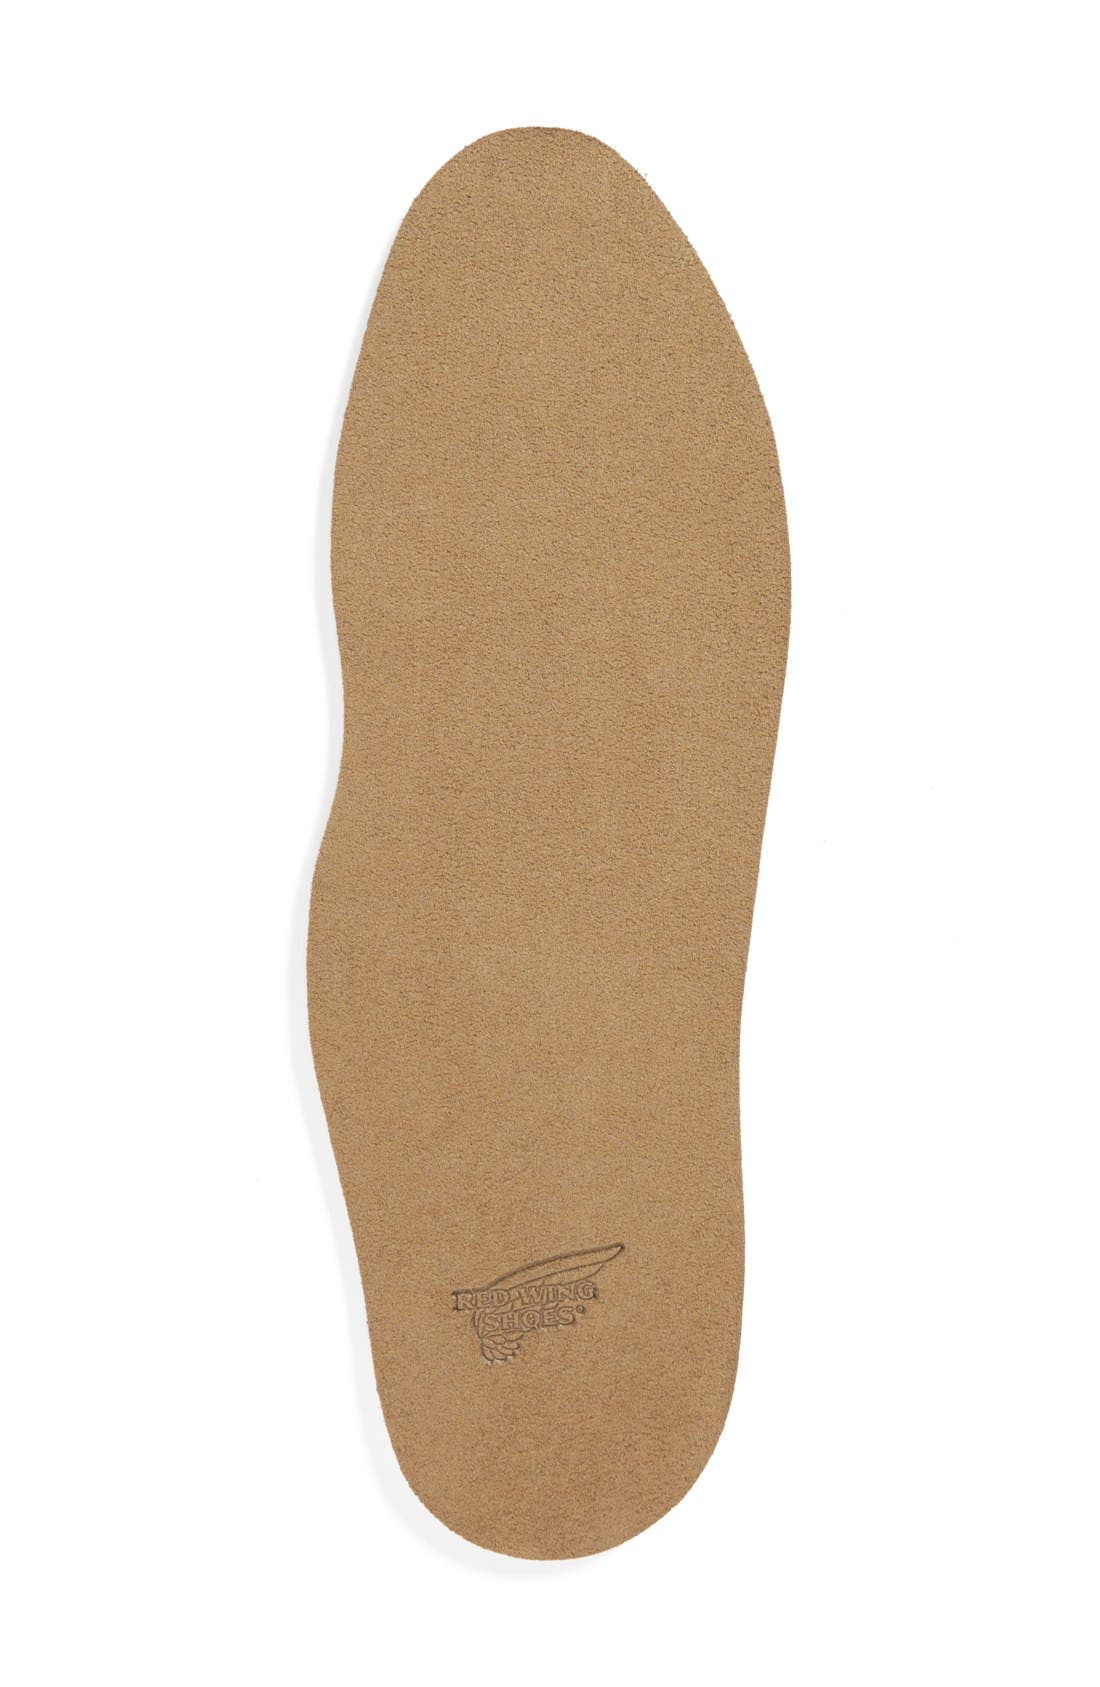 Alternate Image 1 Selected - Red Wing 'Shaped Comfort' Insoles (Men)